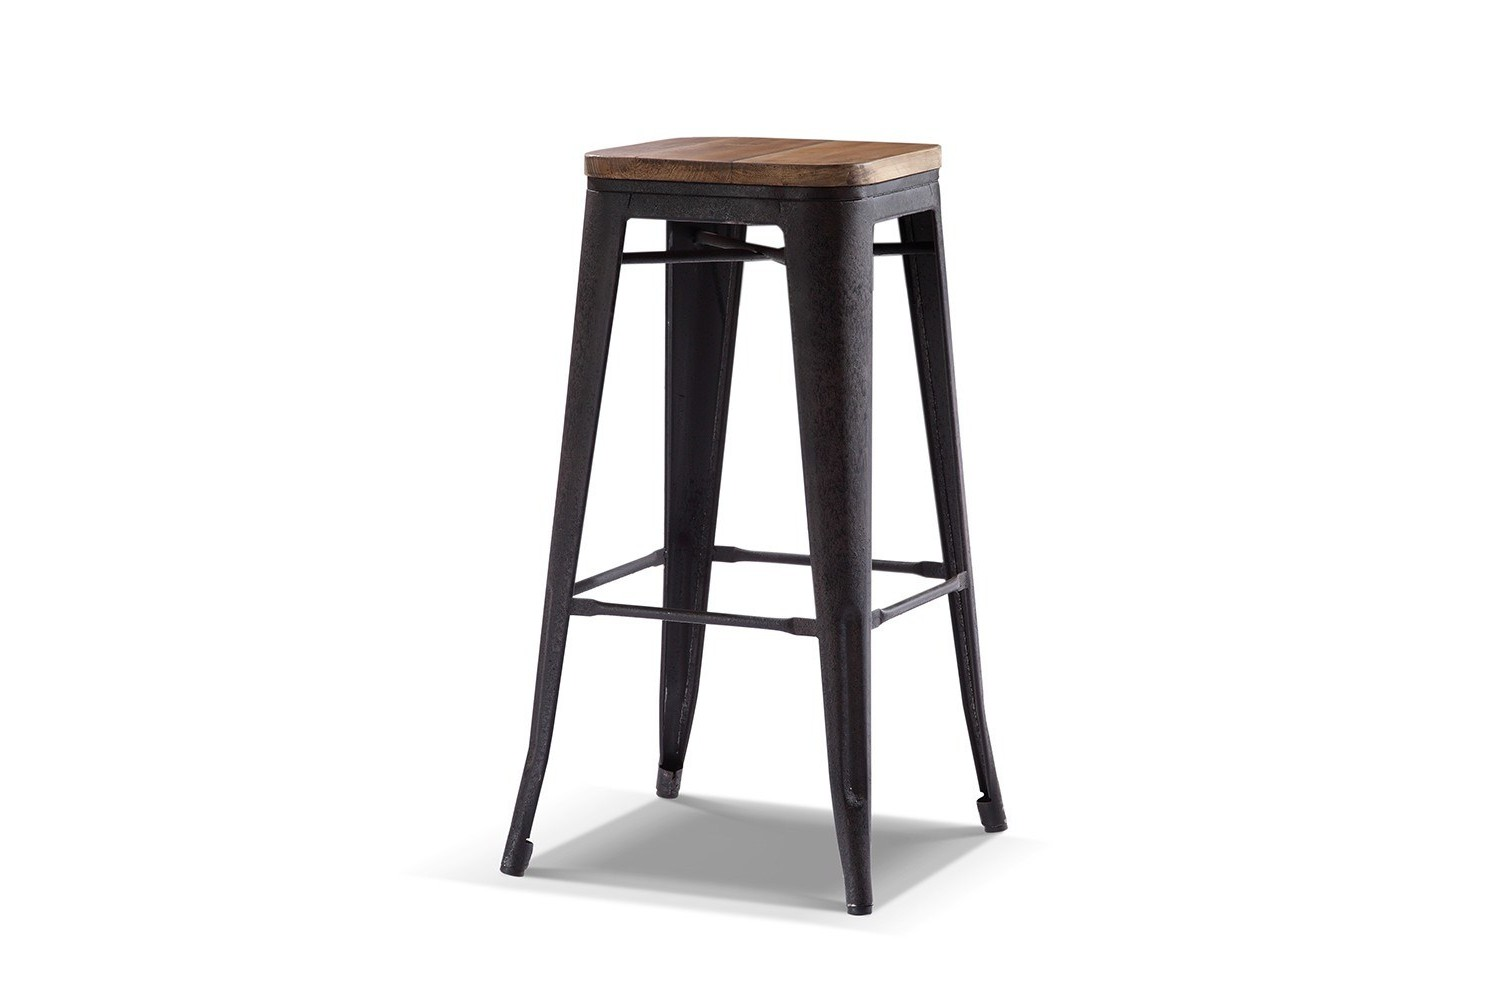 tabouret de bar avec dossier ikea cuisine id es de d coration de maison 1plxezydwm. Black Bedroom Furniture Sets. Home Design Ideas